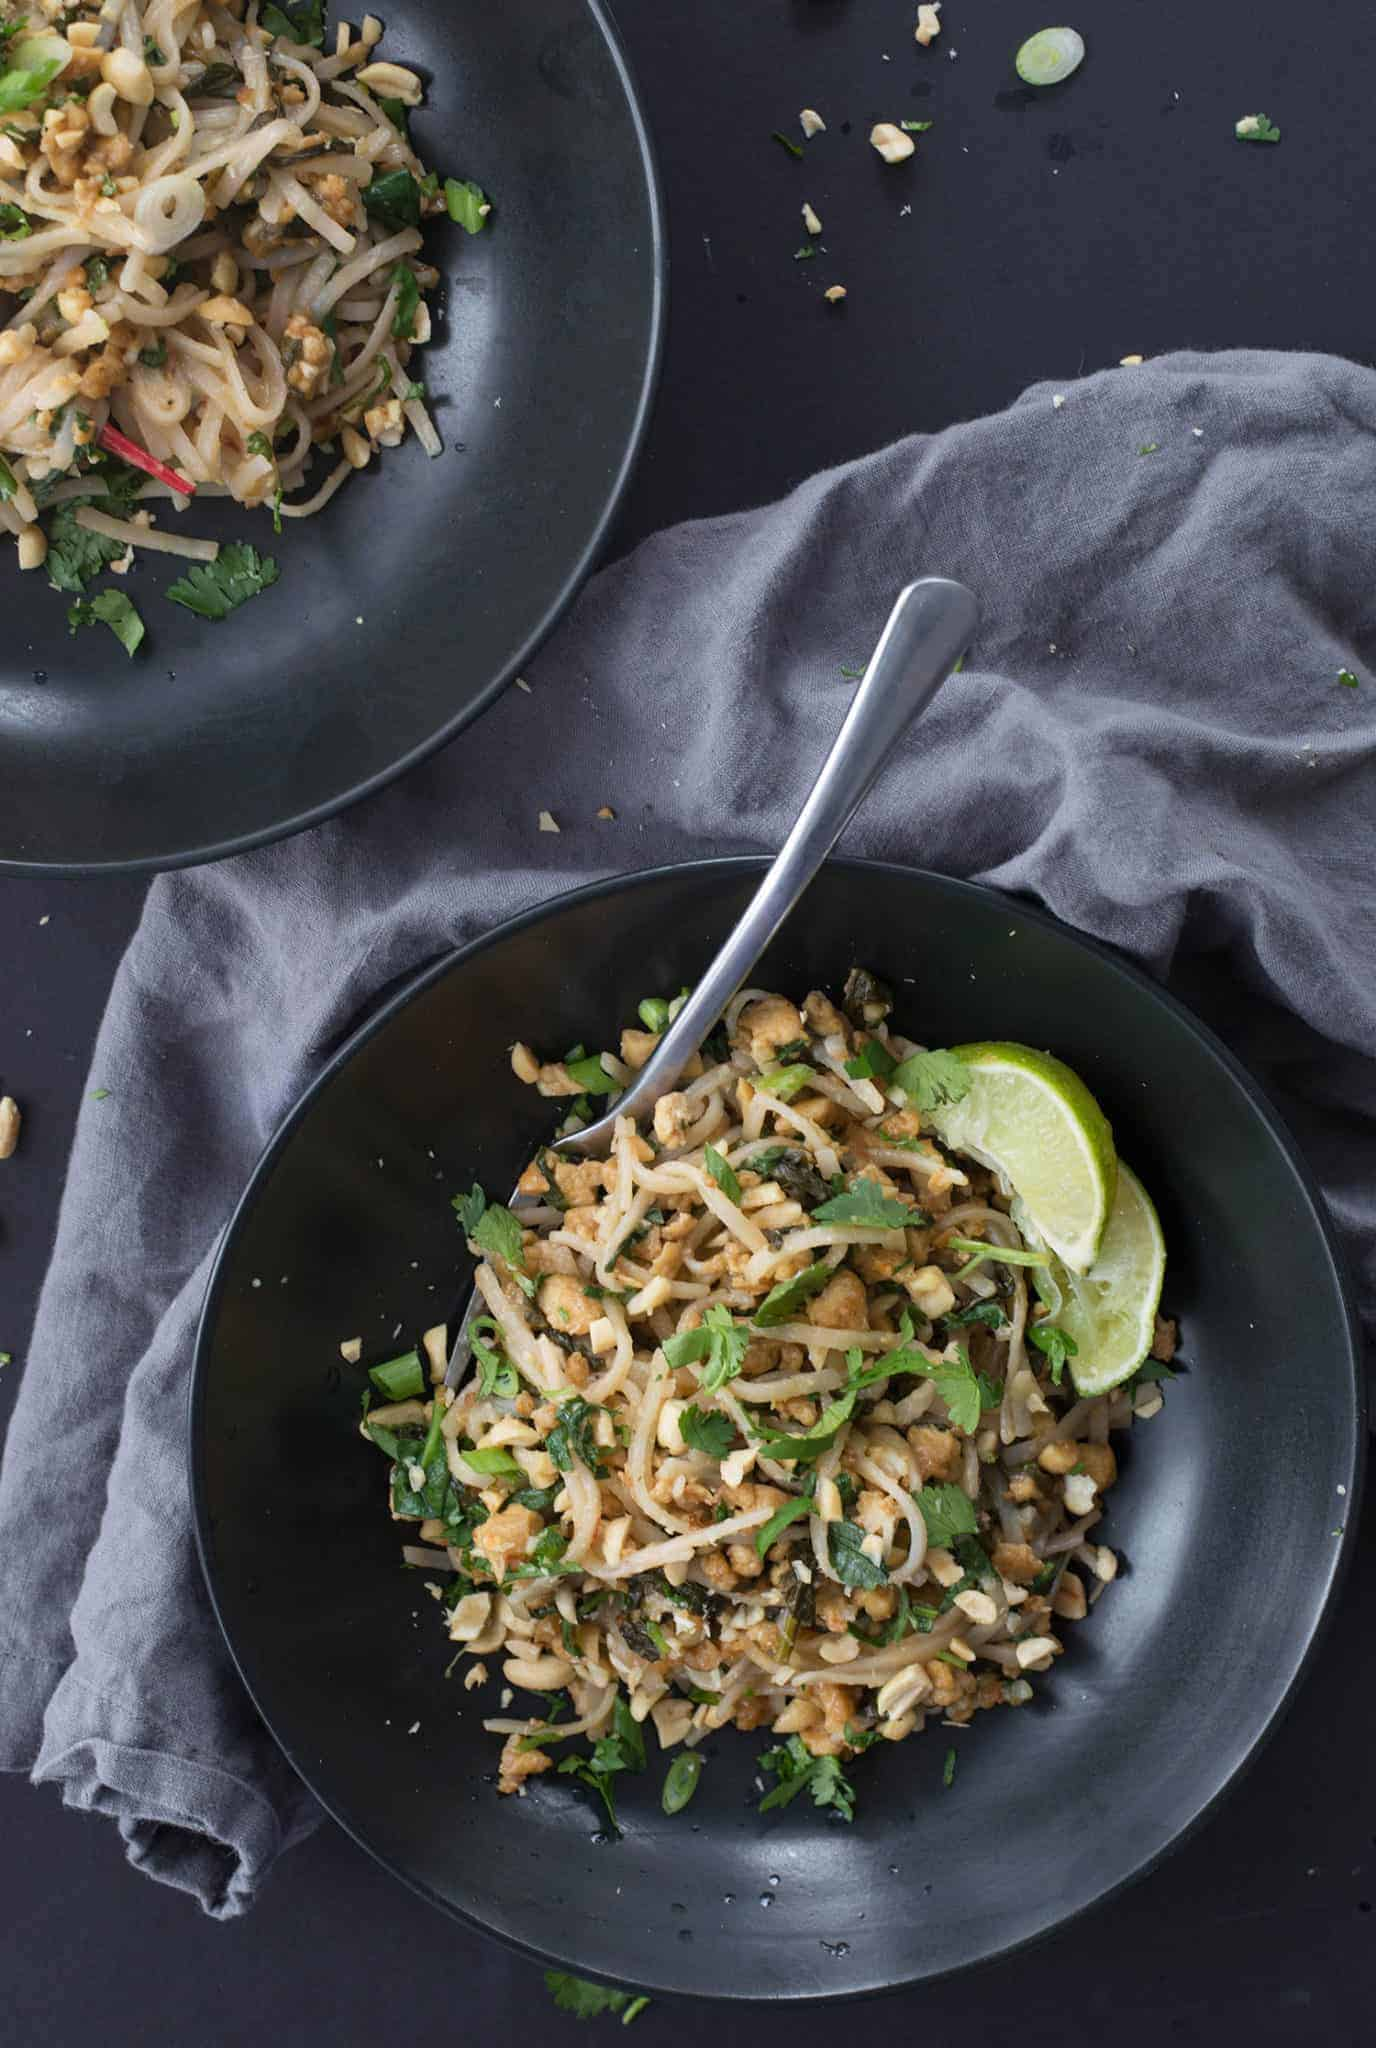 15 minute vegan pad thai! Save this one when you need a quick, healthy meal. Crispy tofu, brown rice noodles, spinach, peanuts and a simple pad thai sauce. | www.delishknowledge.com